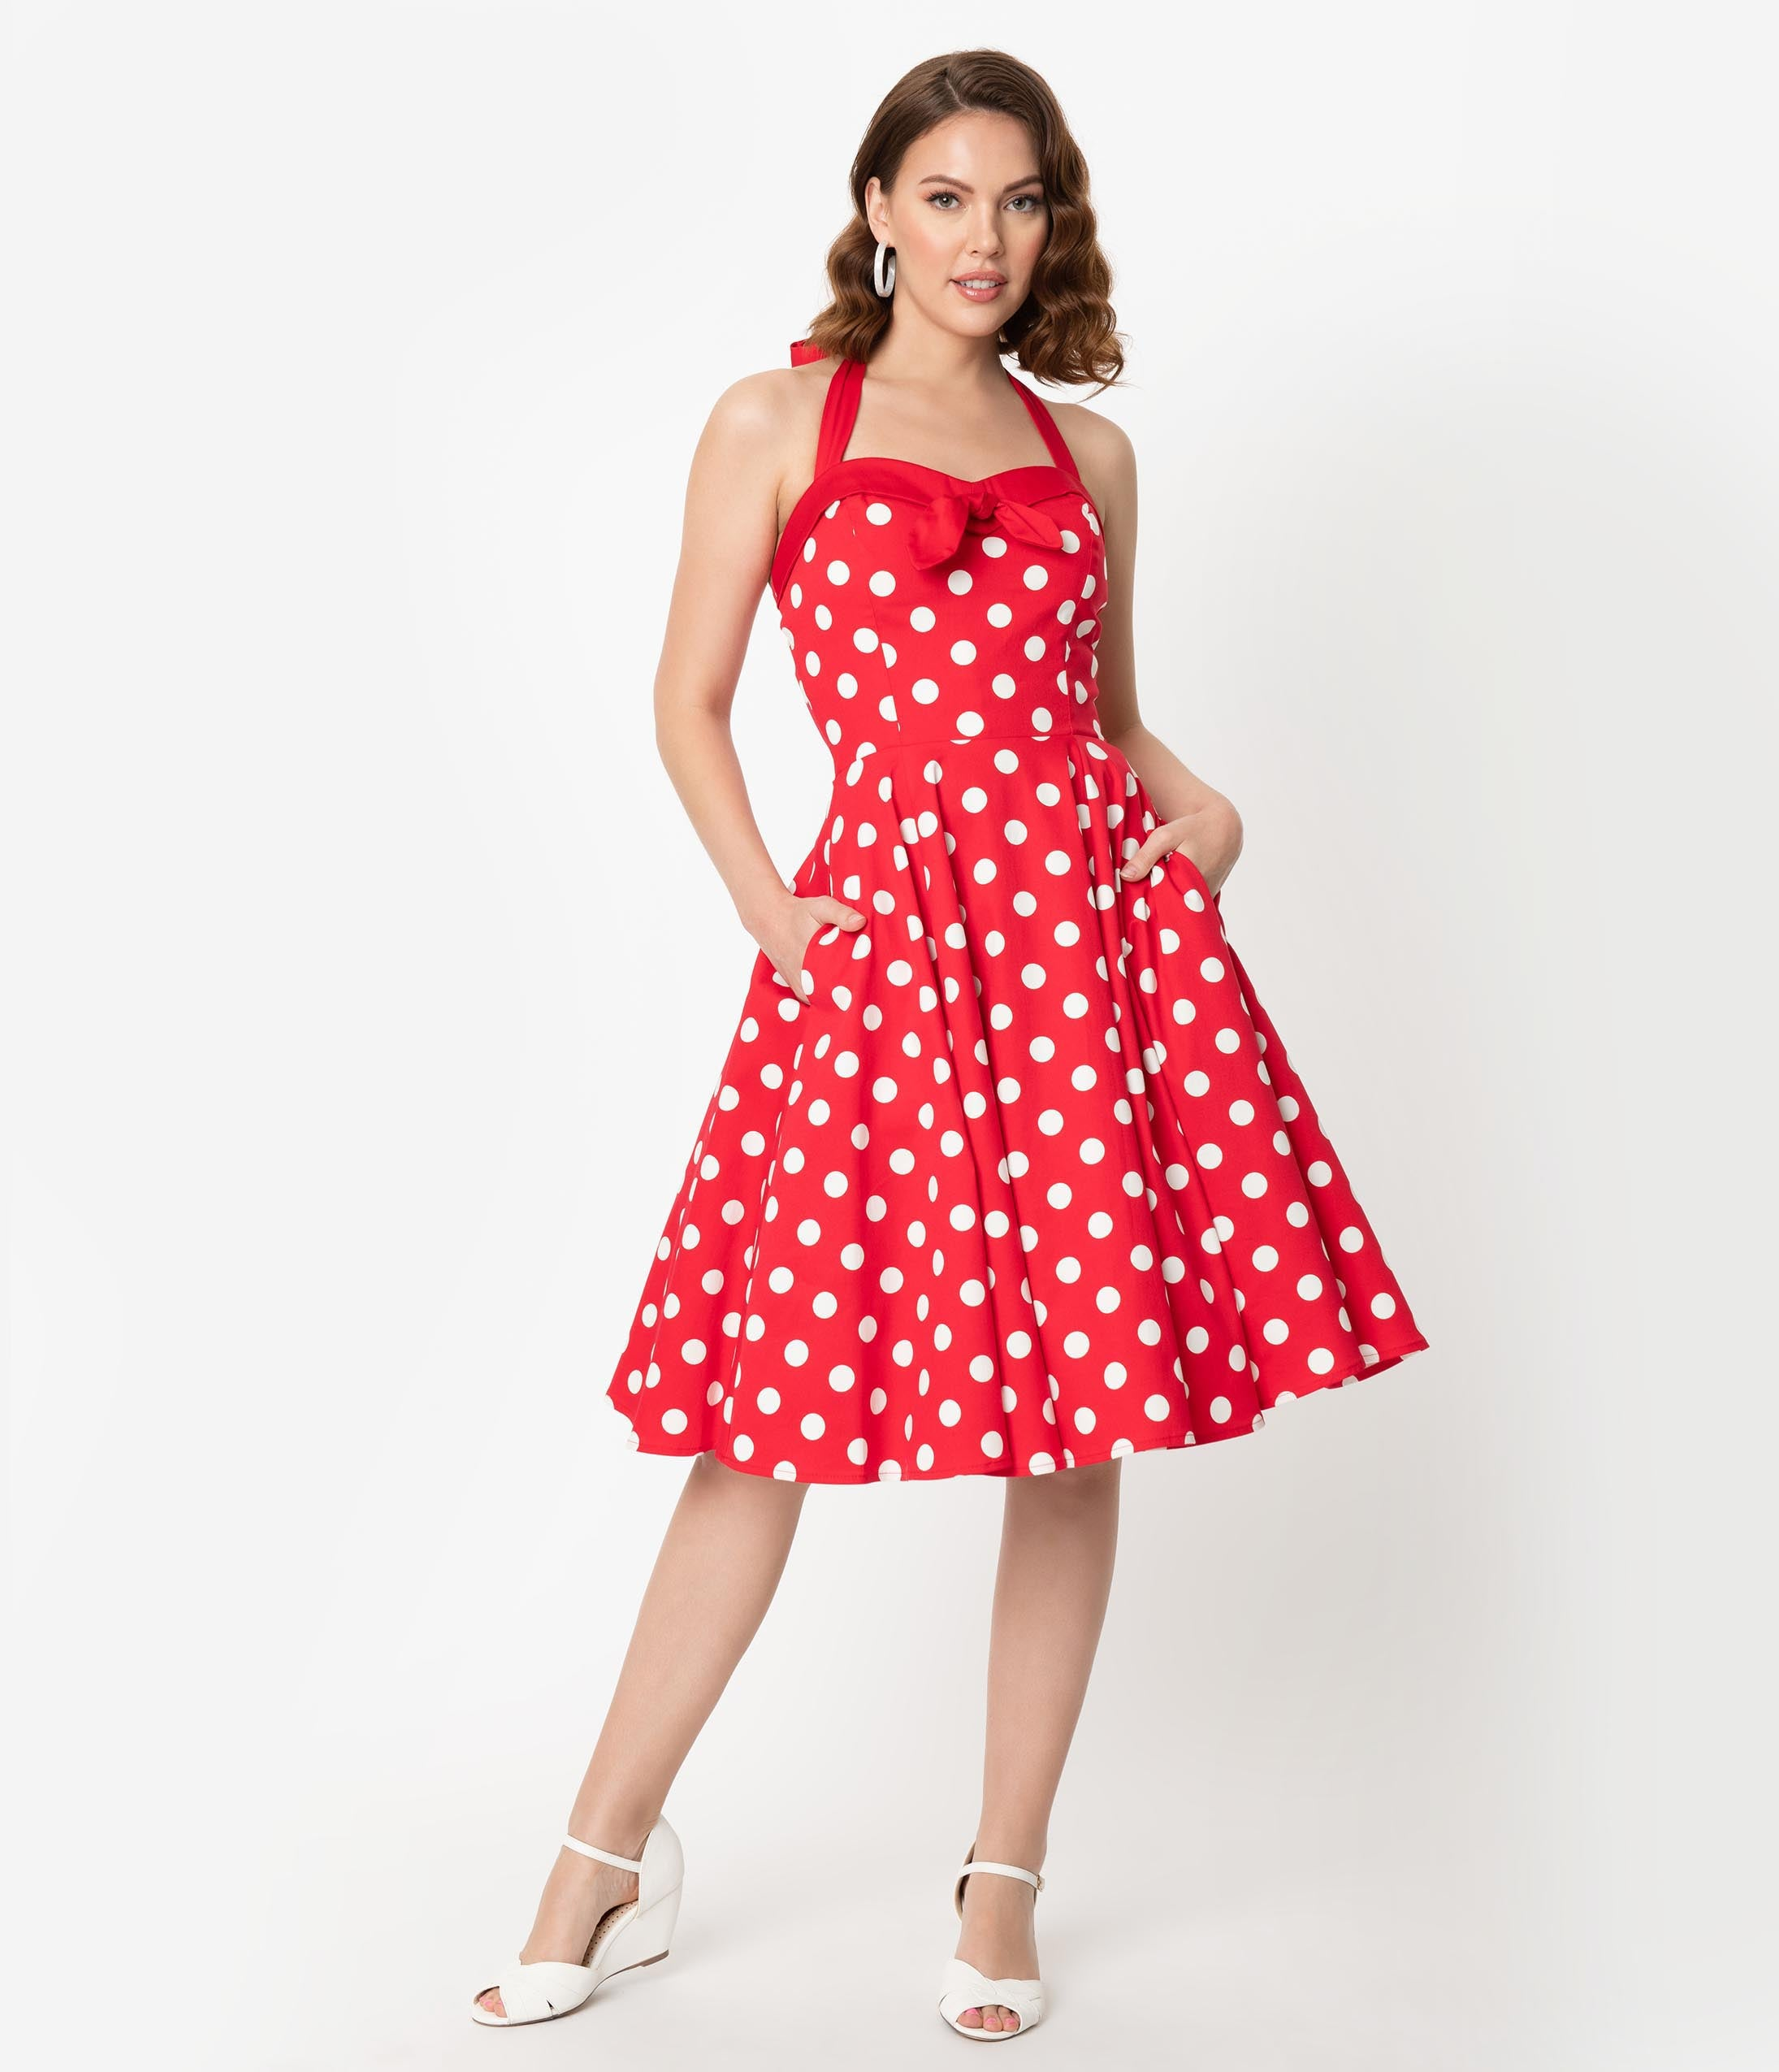 1950s Dresses, 50s Dresses | 1950s Style Dresses Vintage Style Red  White Polka Dot Print Halter Swing Dress $68.00 AT vintagedancer.com